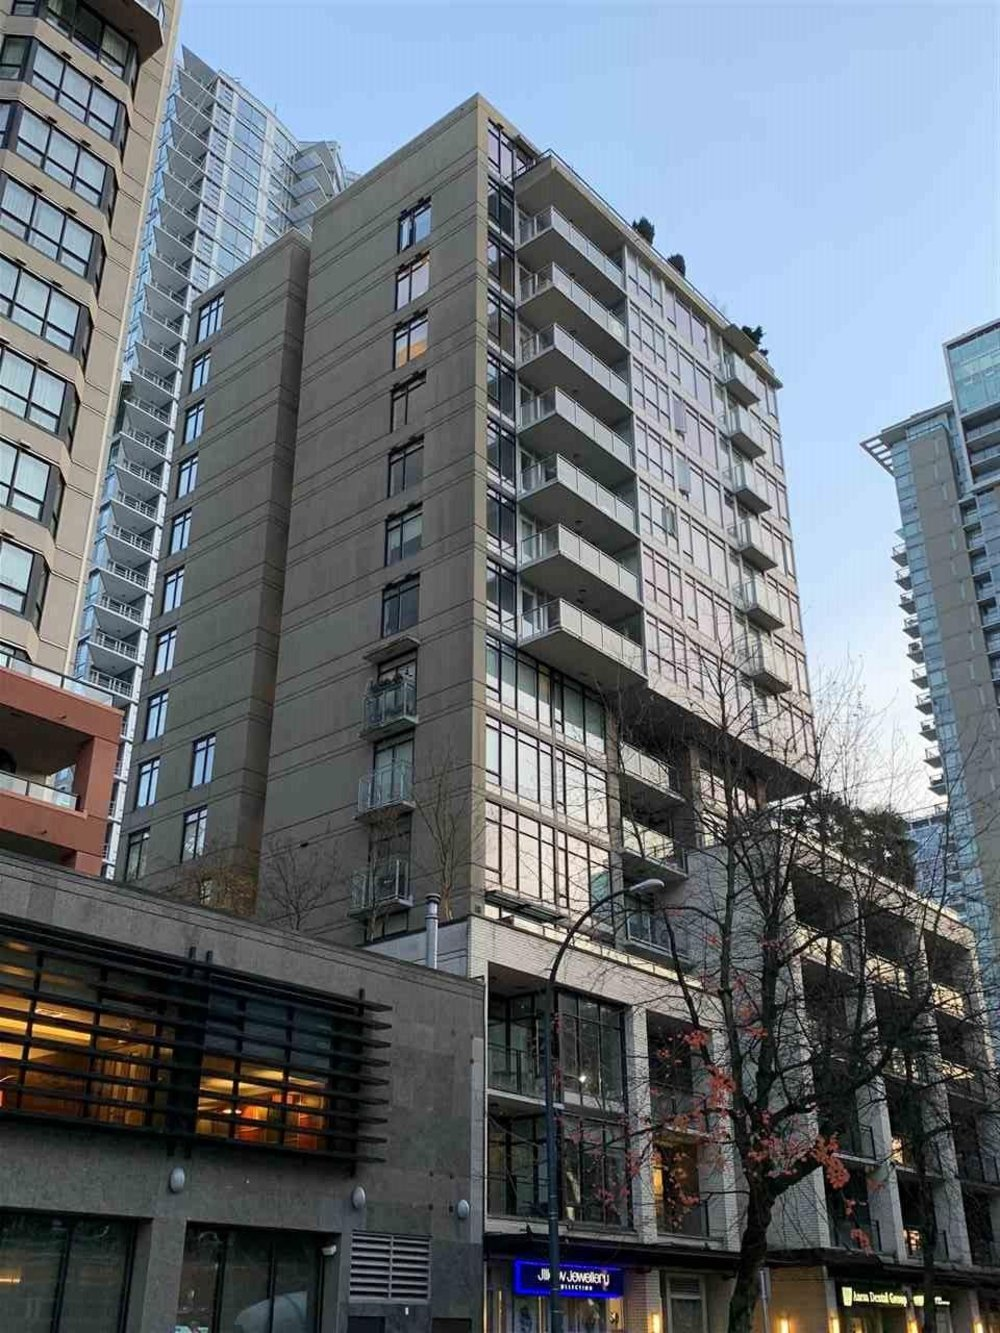 502 1252 Hornby Street, Vancouver - 1 bed, 1 bath - For Sale